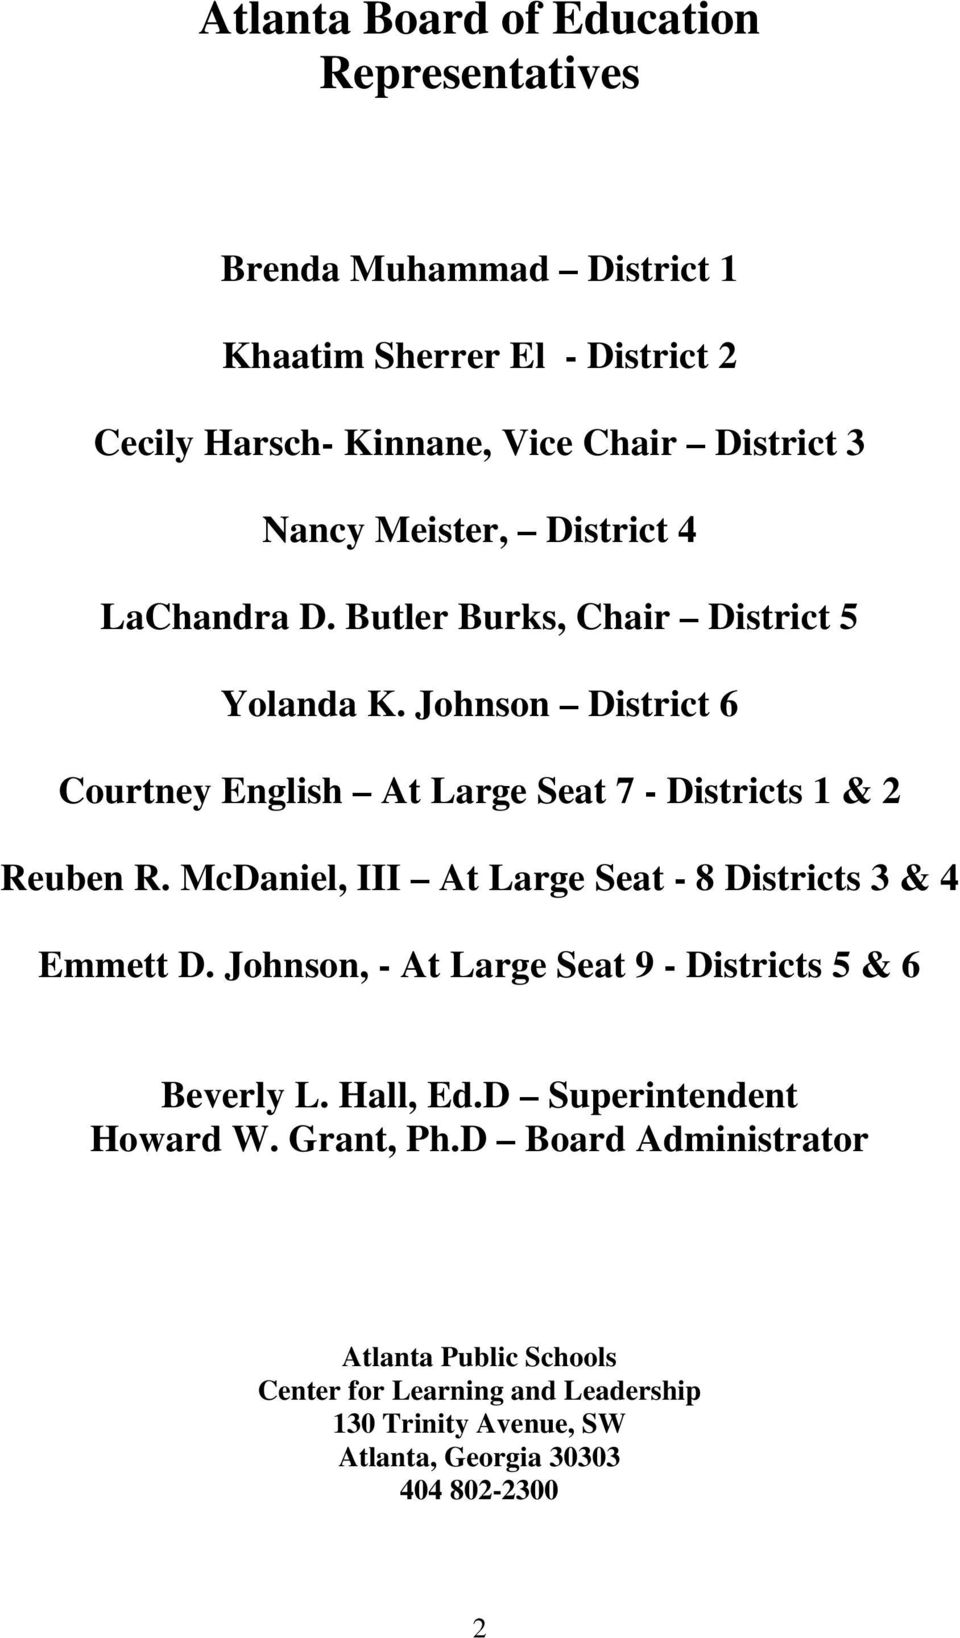 Johnson District 6 Courtney English At Large Seat 7 - Districts 1 & 2 Reuben R. McDaniel, III At Large Seat - 8 Districts 3 & 4 Emmett D.